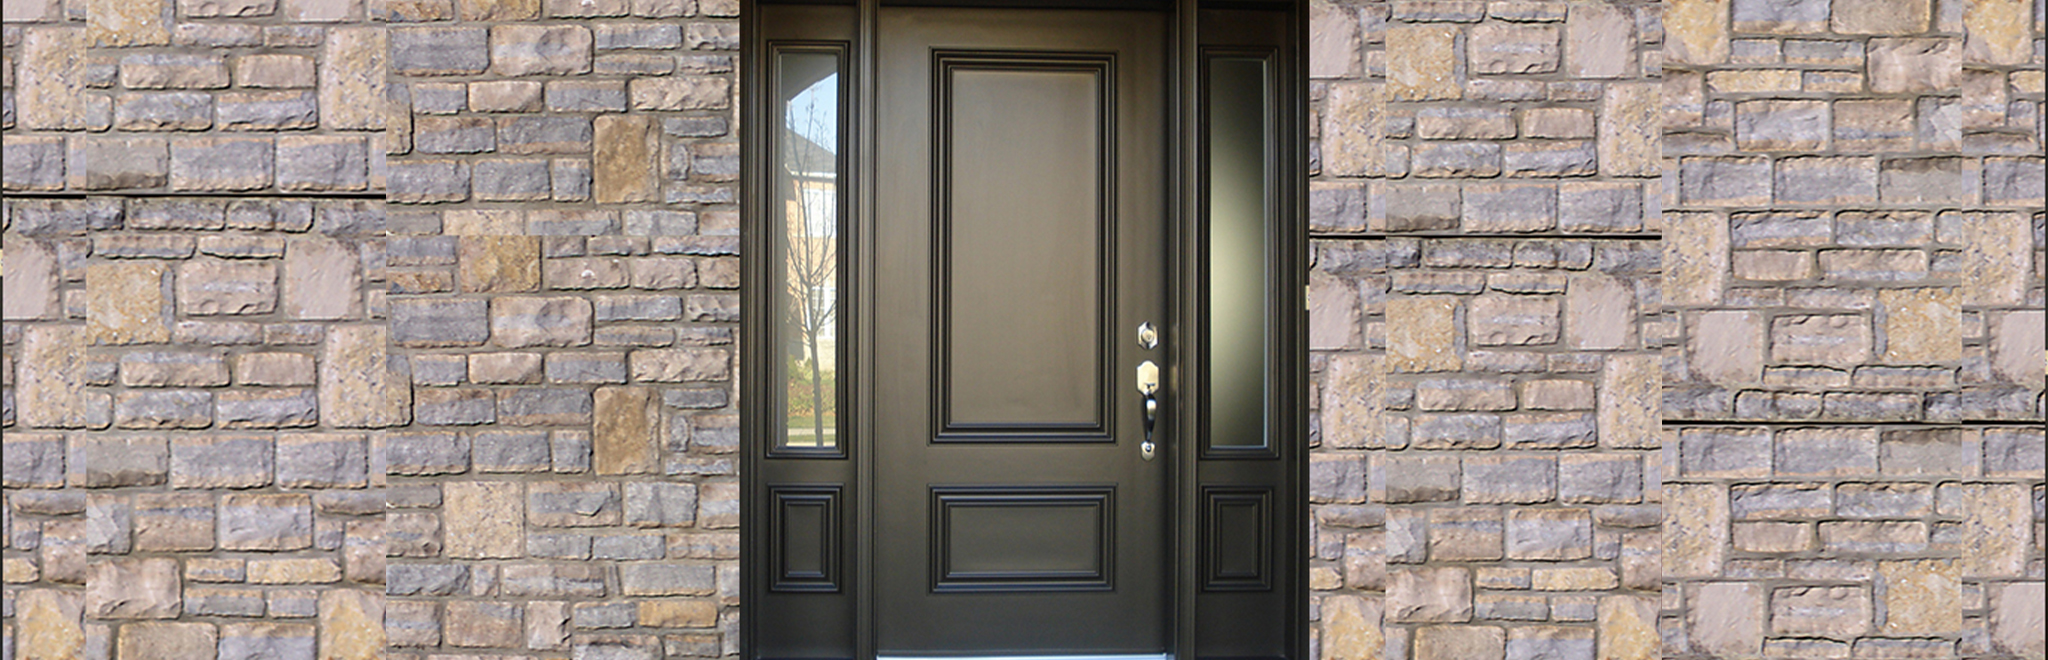 Door Replacement and Installation Services